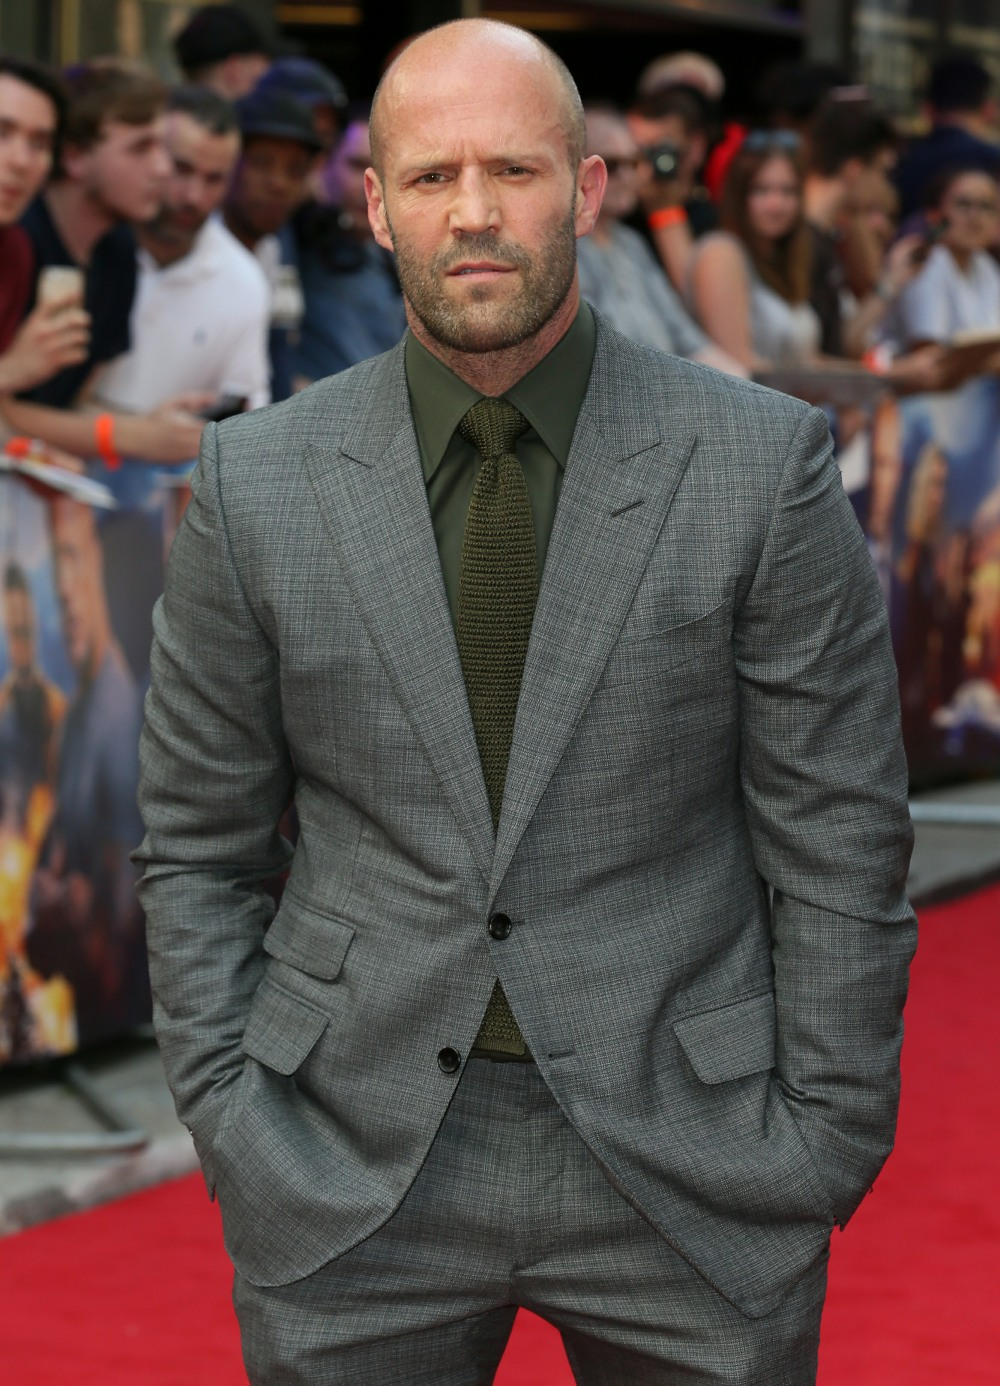 The Special Screening of 'Fast & Furious: Hobbs & Shaw' held at the Curzon Mayfair